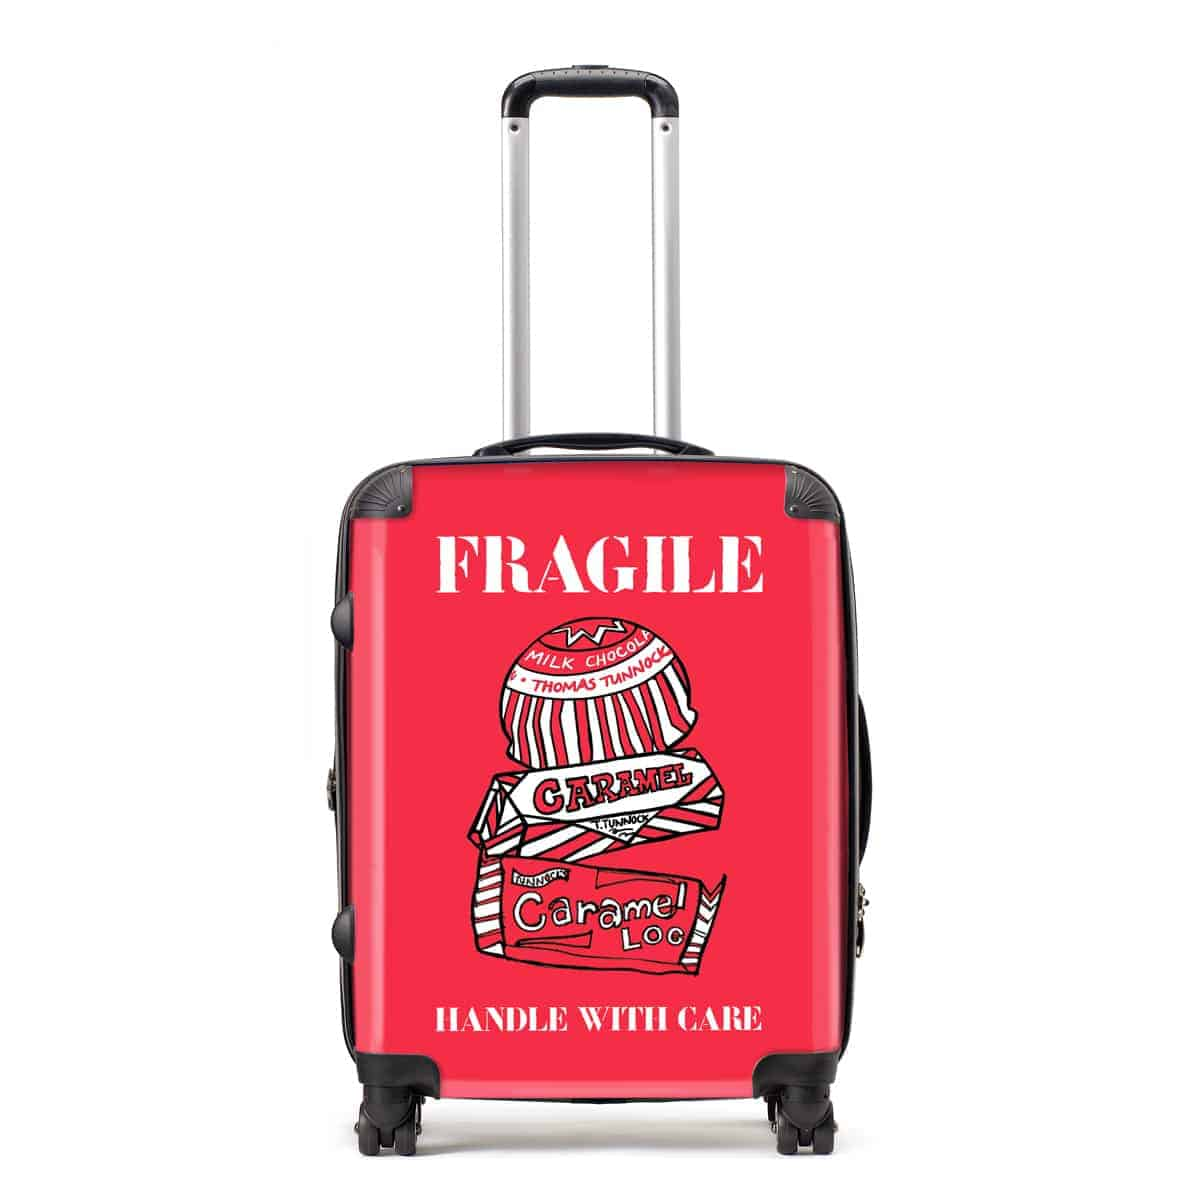 Tunnocks Fragile suitcase